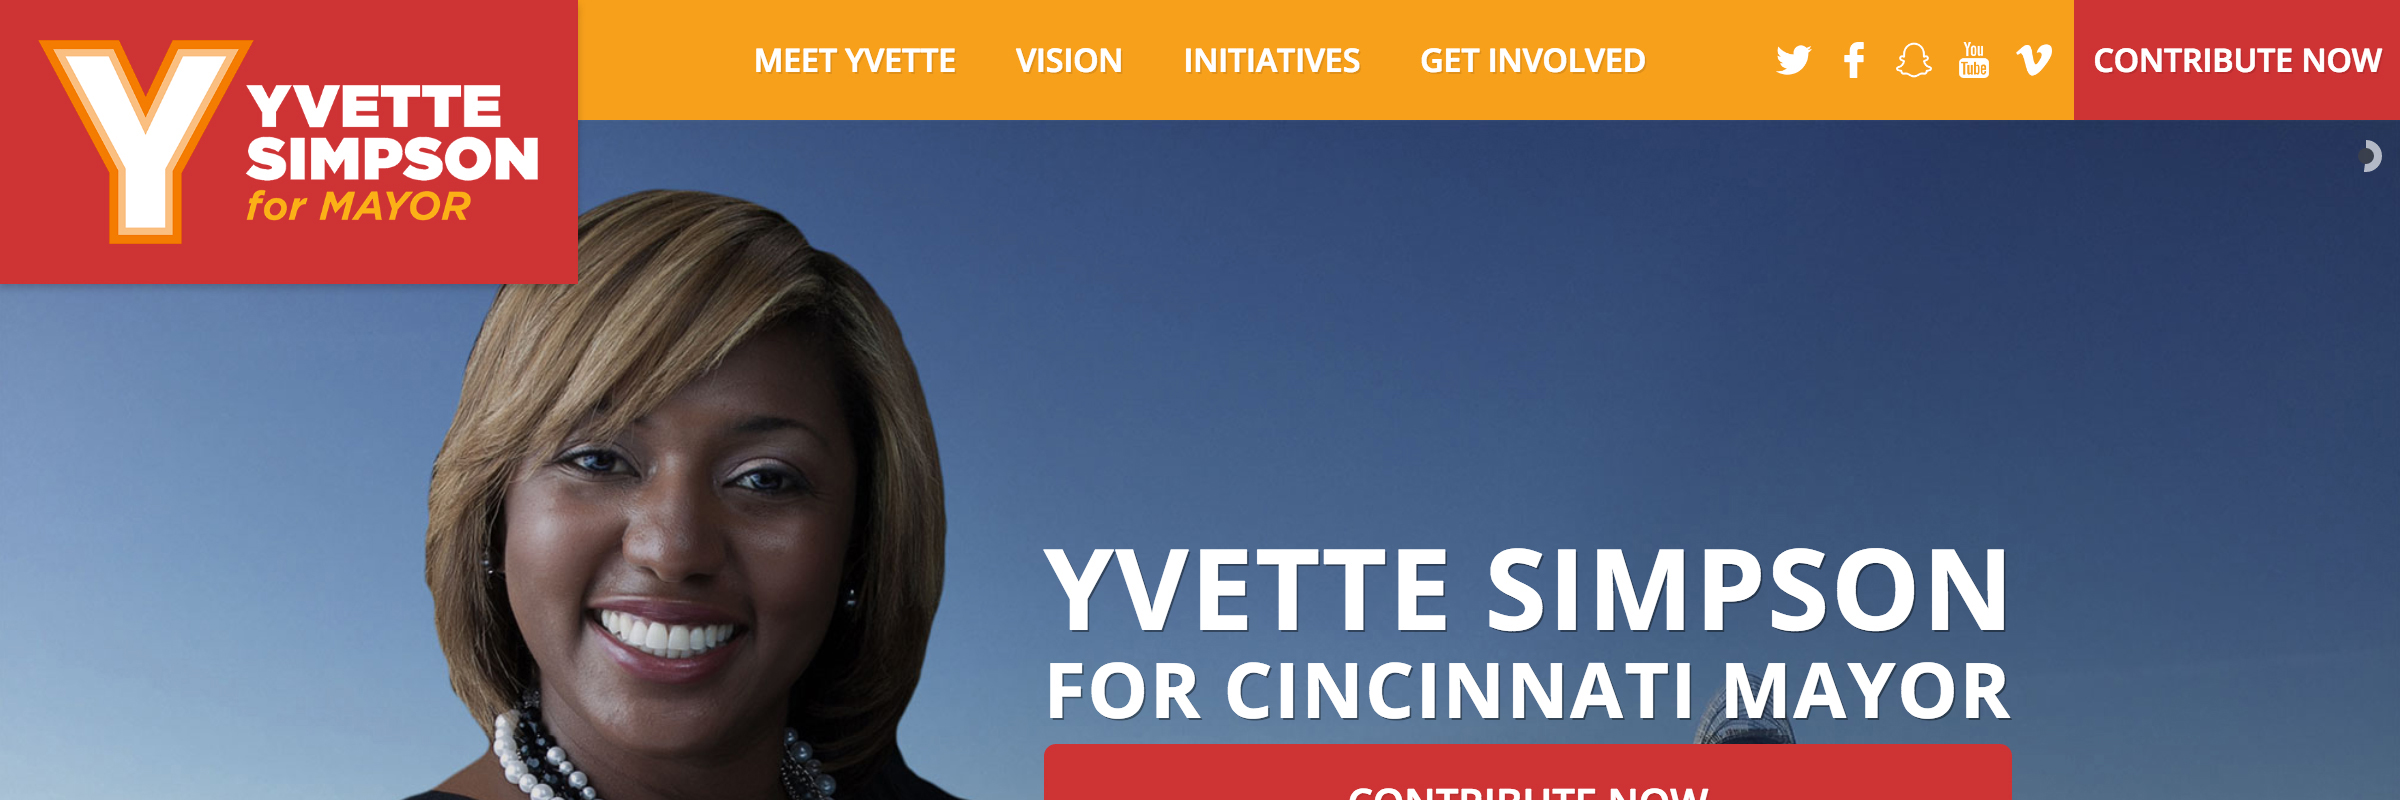 Yvette Simpson For Cincinnati Mayor